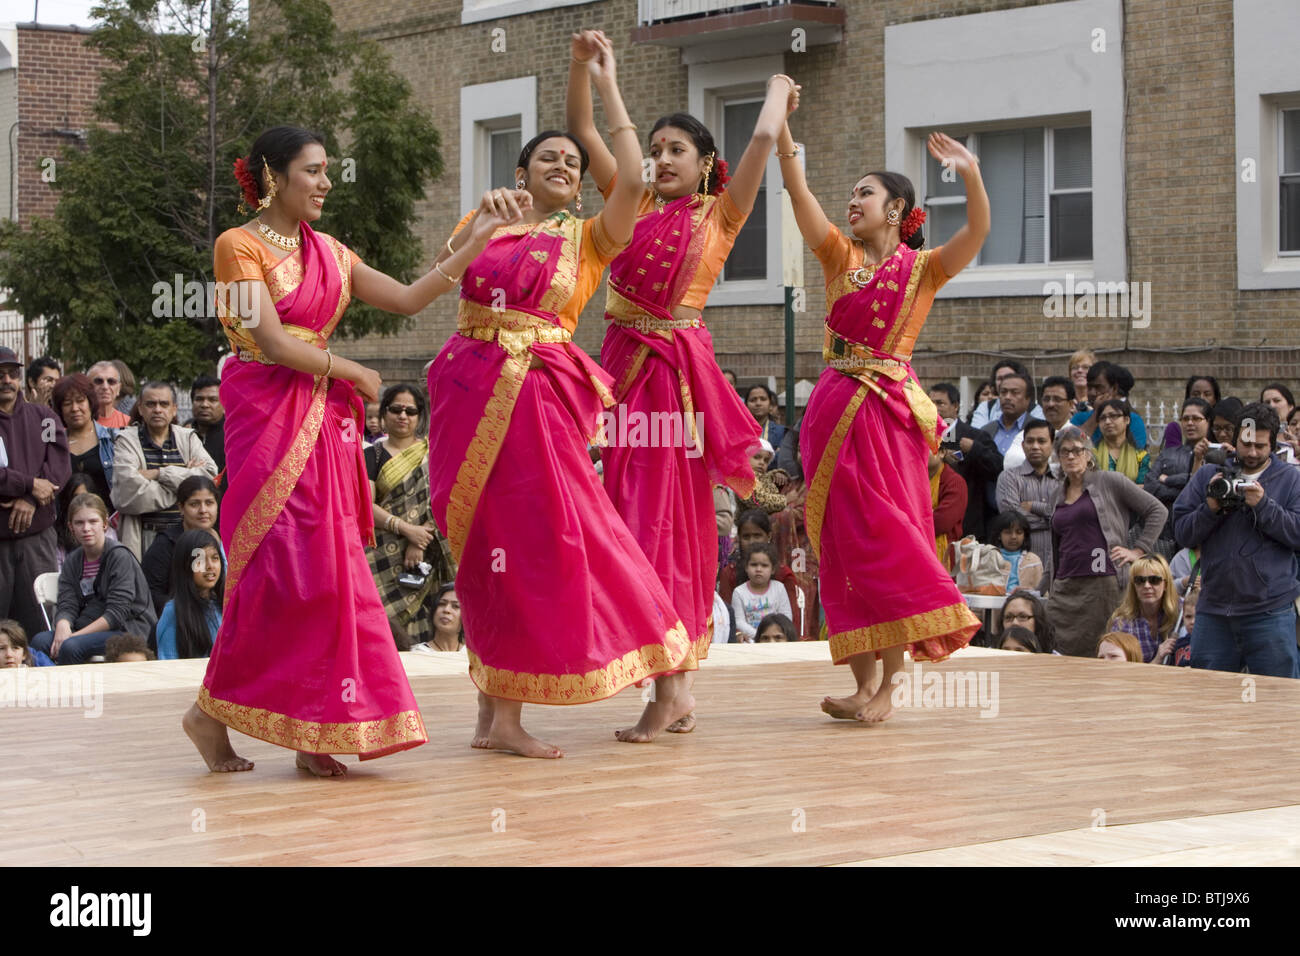 American bangladais performance group effectuer lors d'un festival des cultures du monde à Brooklyn, New Photo Stock